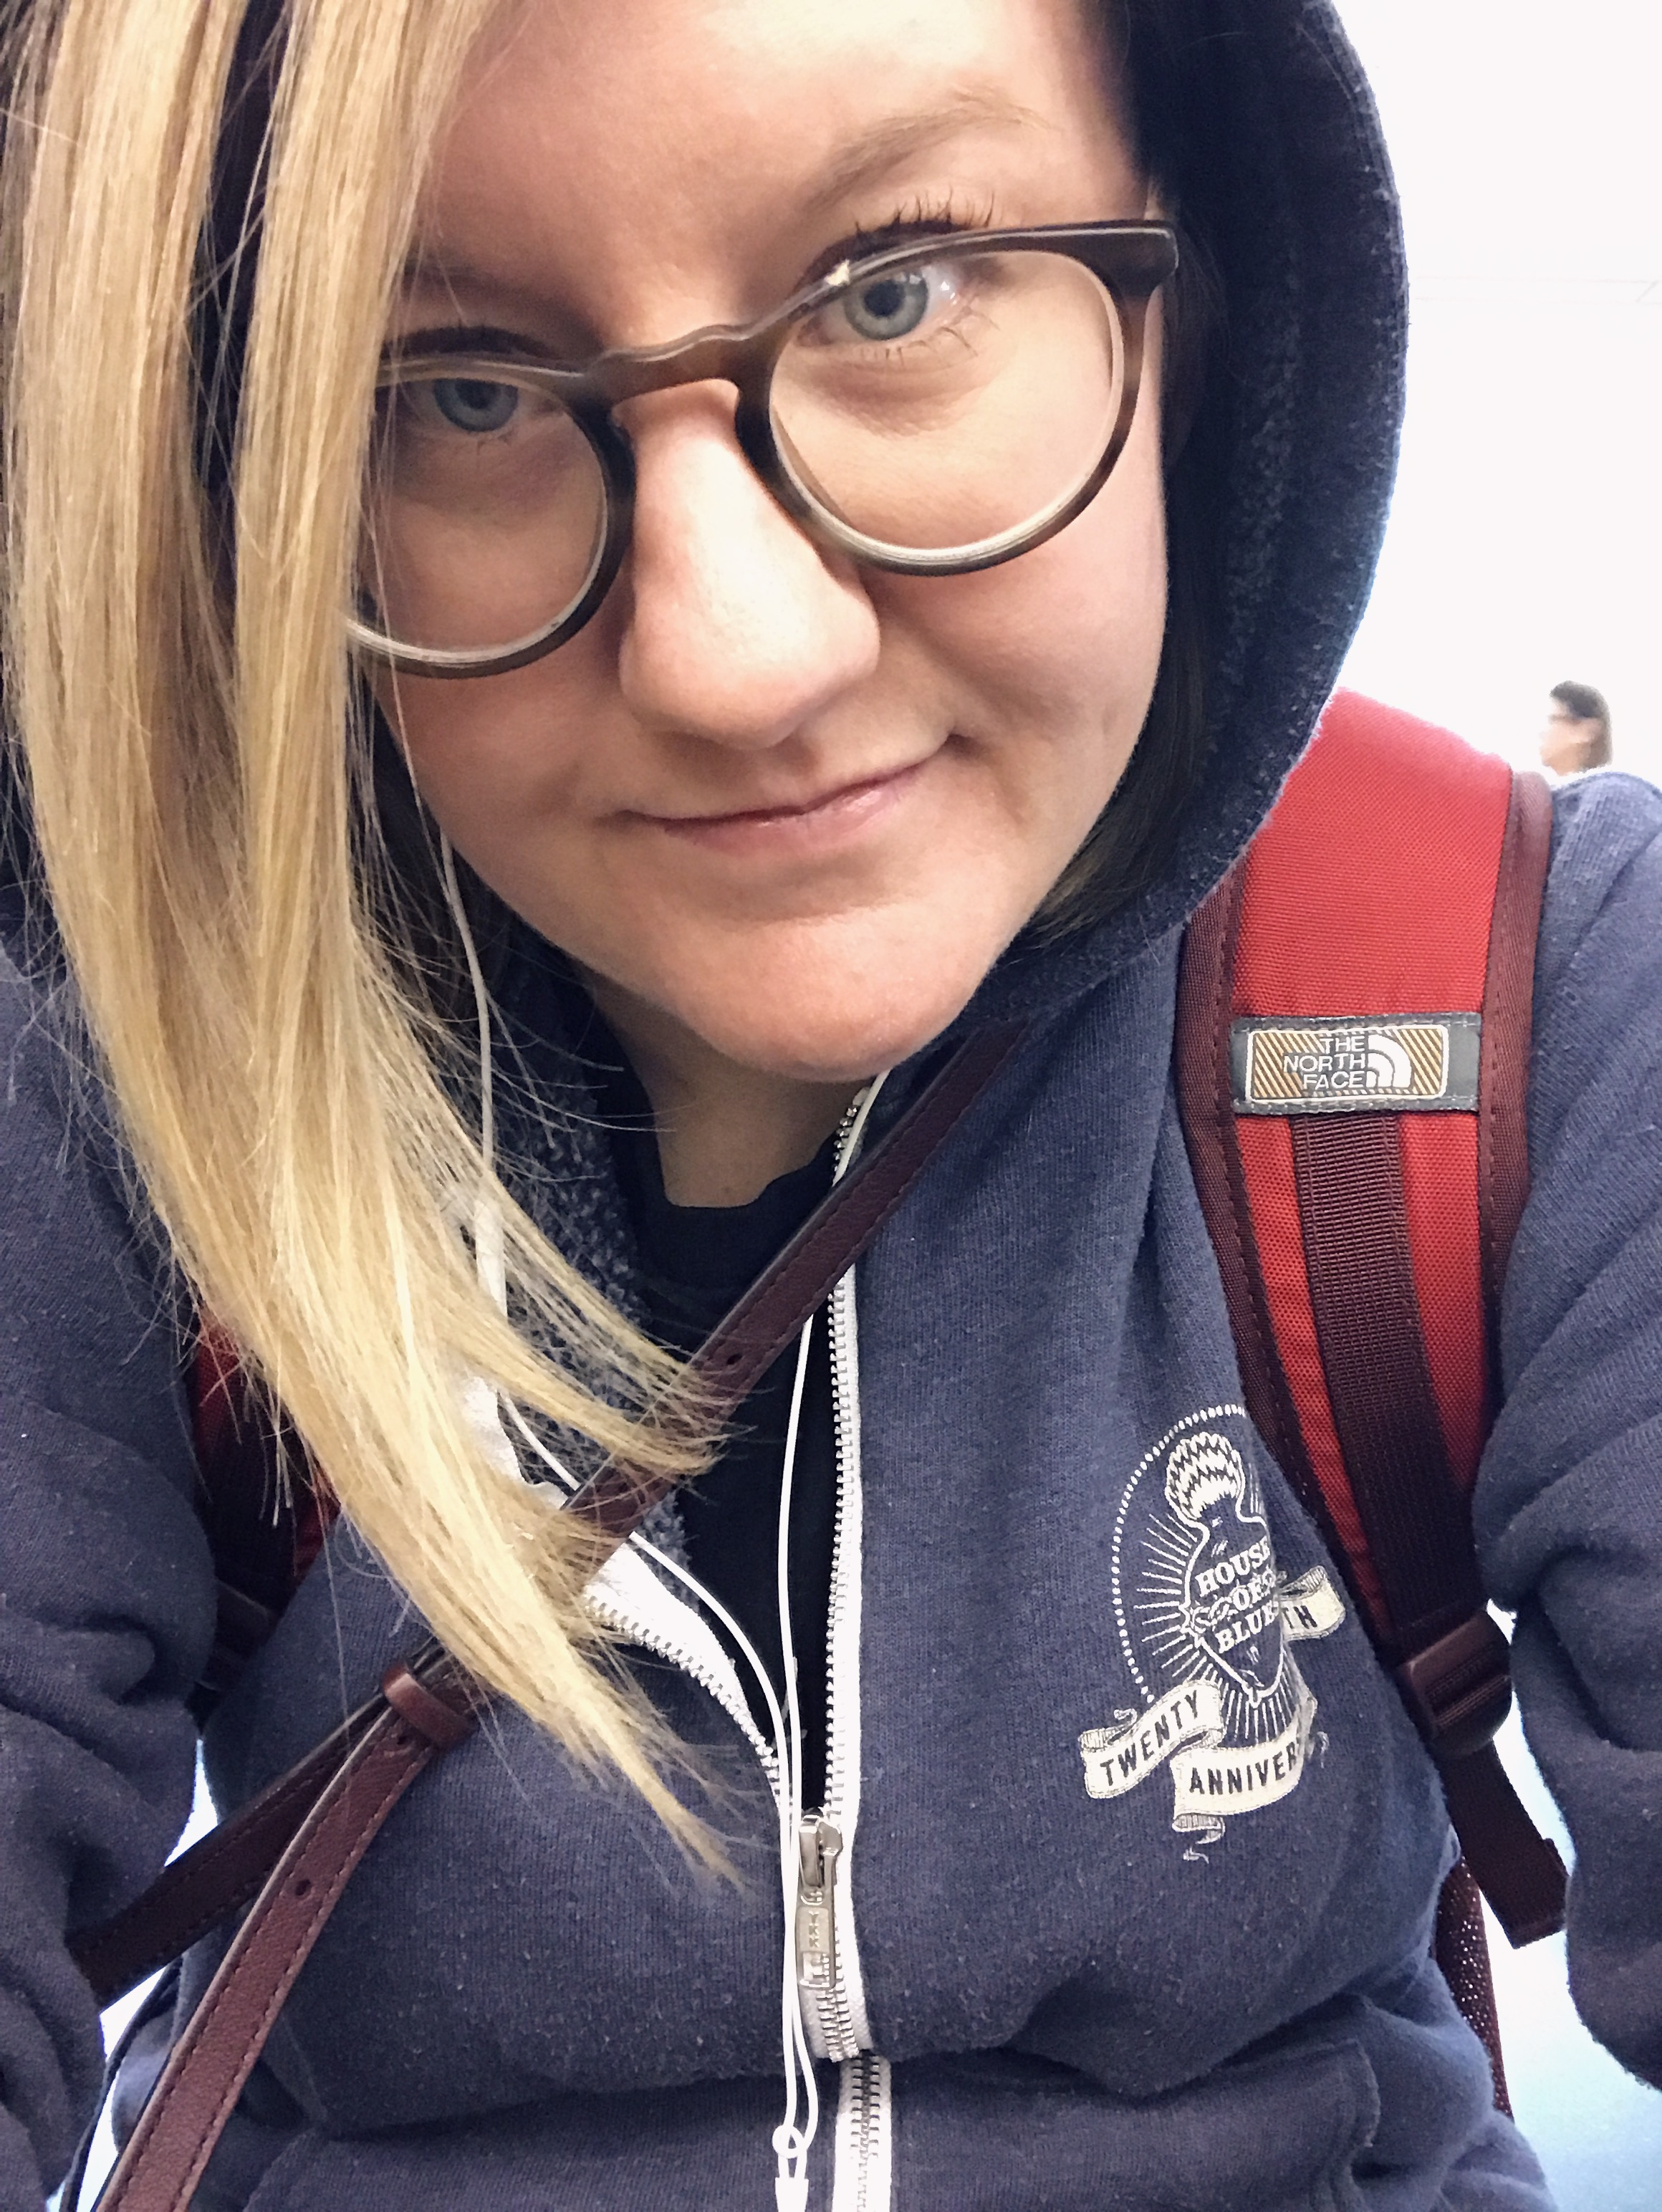 Embracing my full emo, no filter self whilst at the airport, carrying J.R. around.